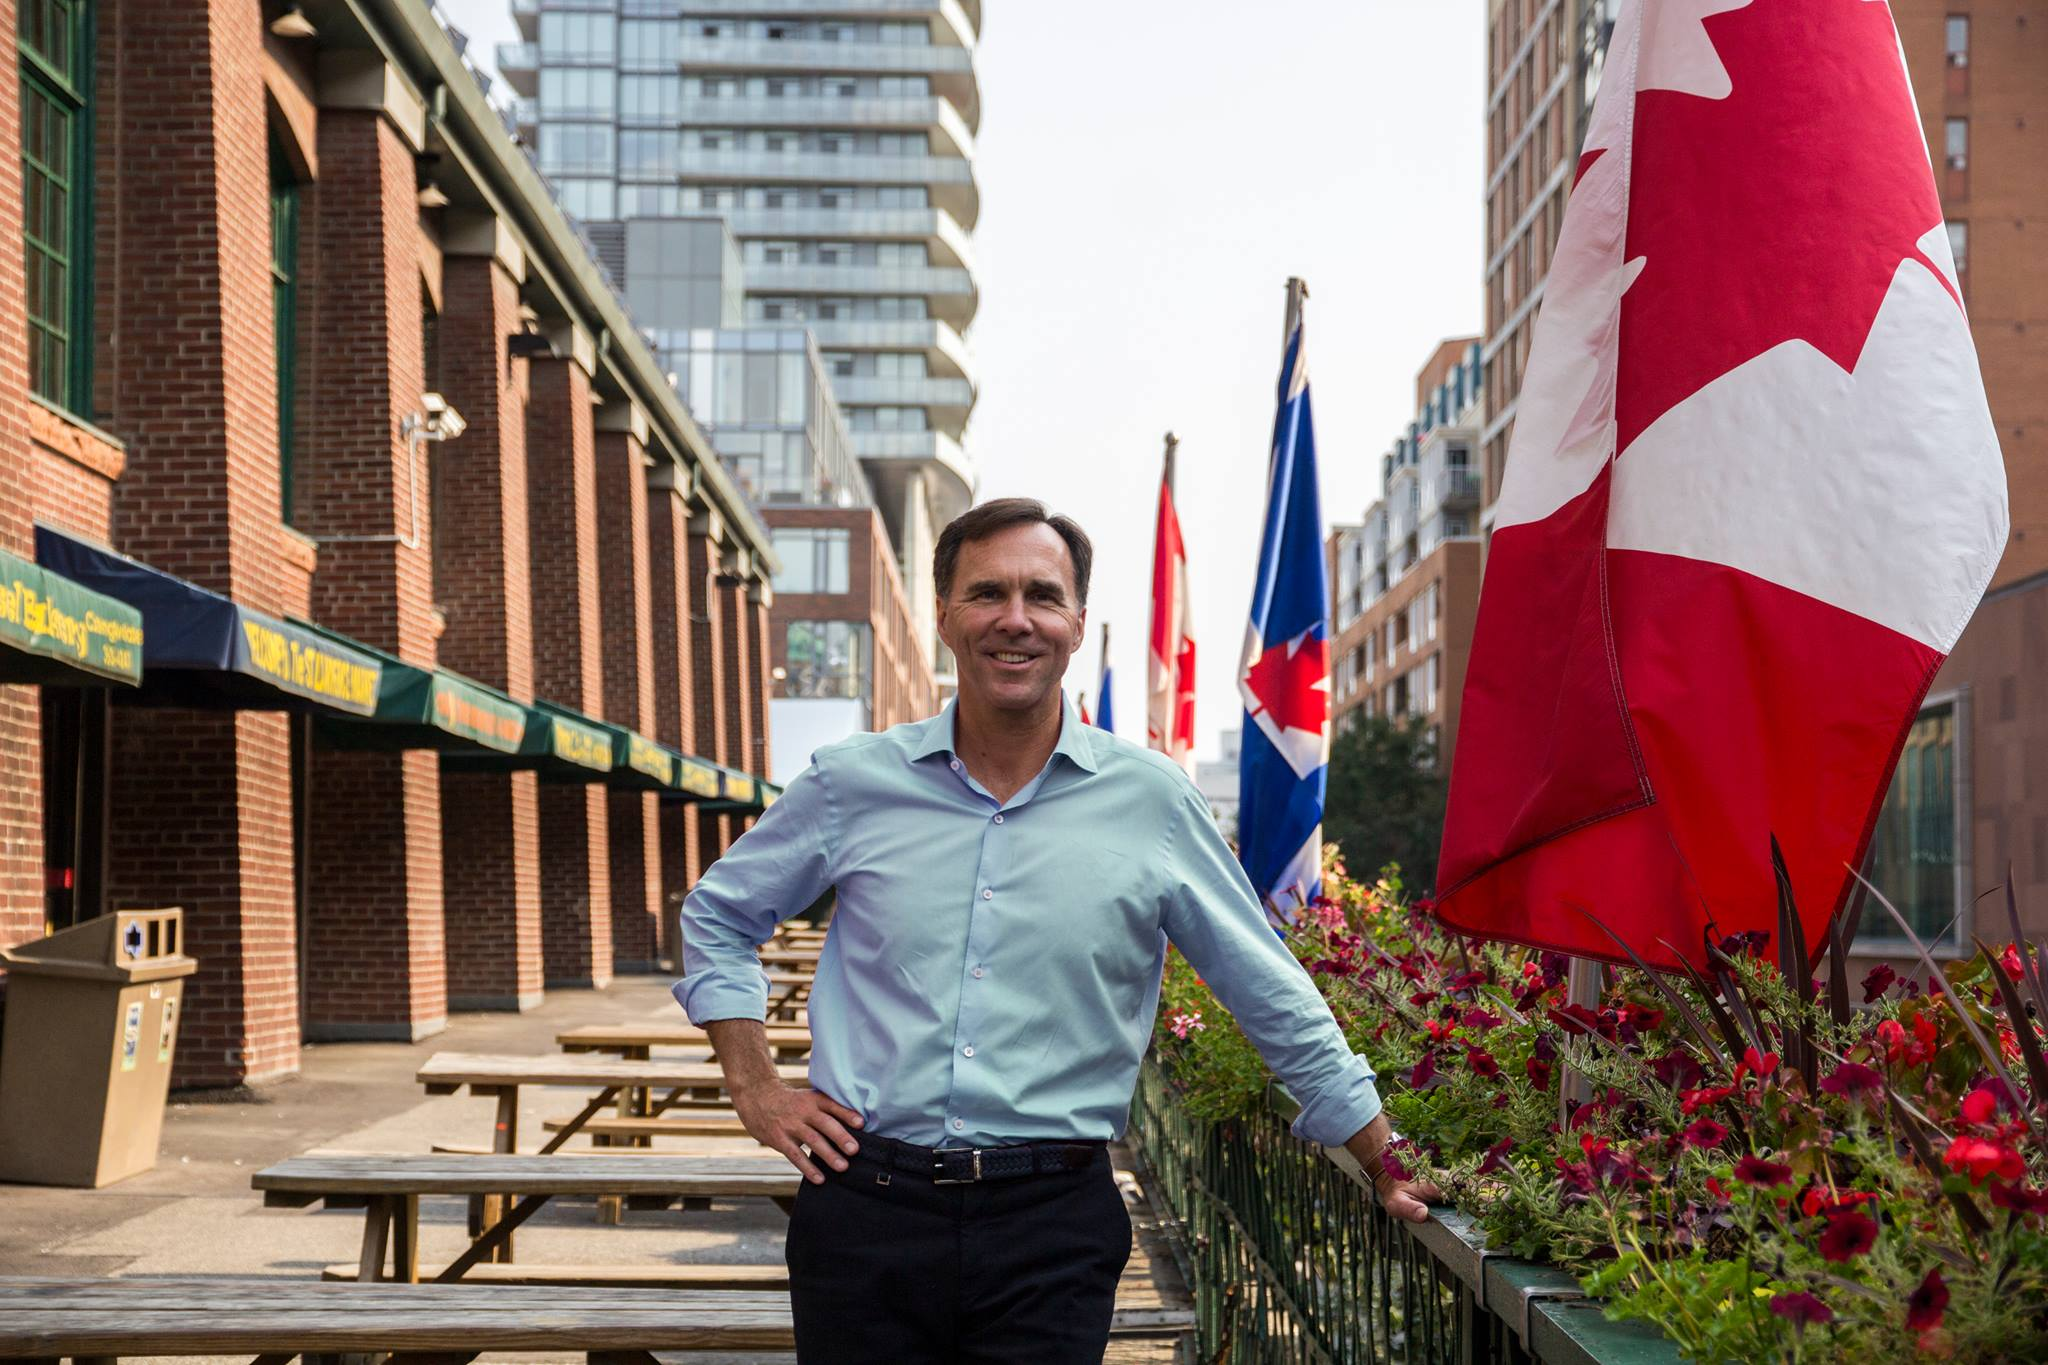 Finance Minister Bill Morneau conceded Monday that new tax adjustments will have an annual net drain on the federal treasury starting in 2016-17 (Photo taken from Bill Morneau's officlal Facebook fan page)